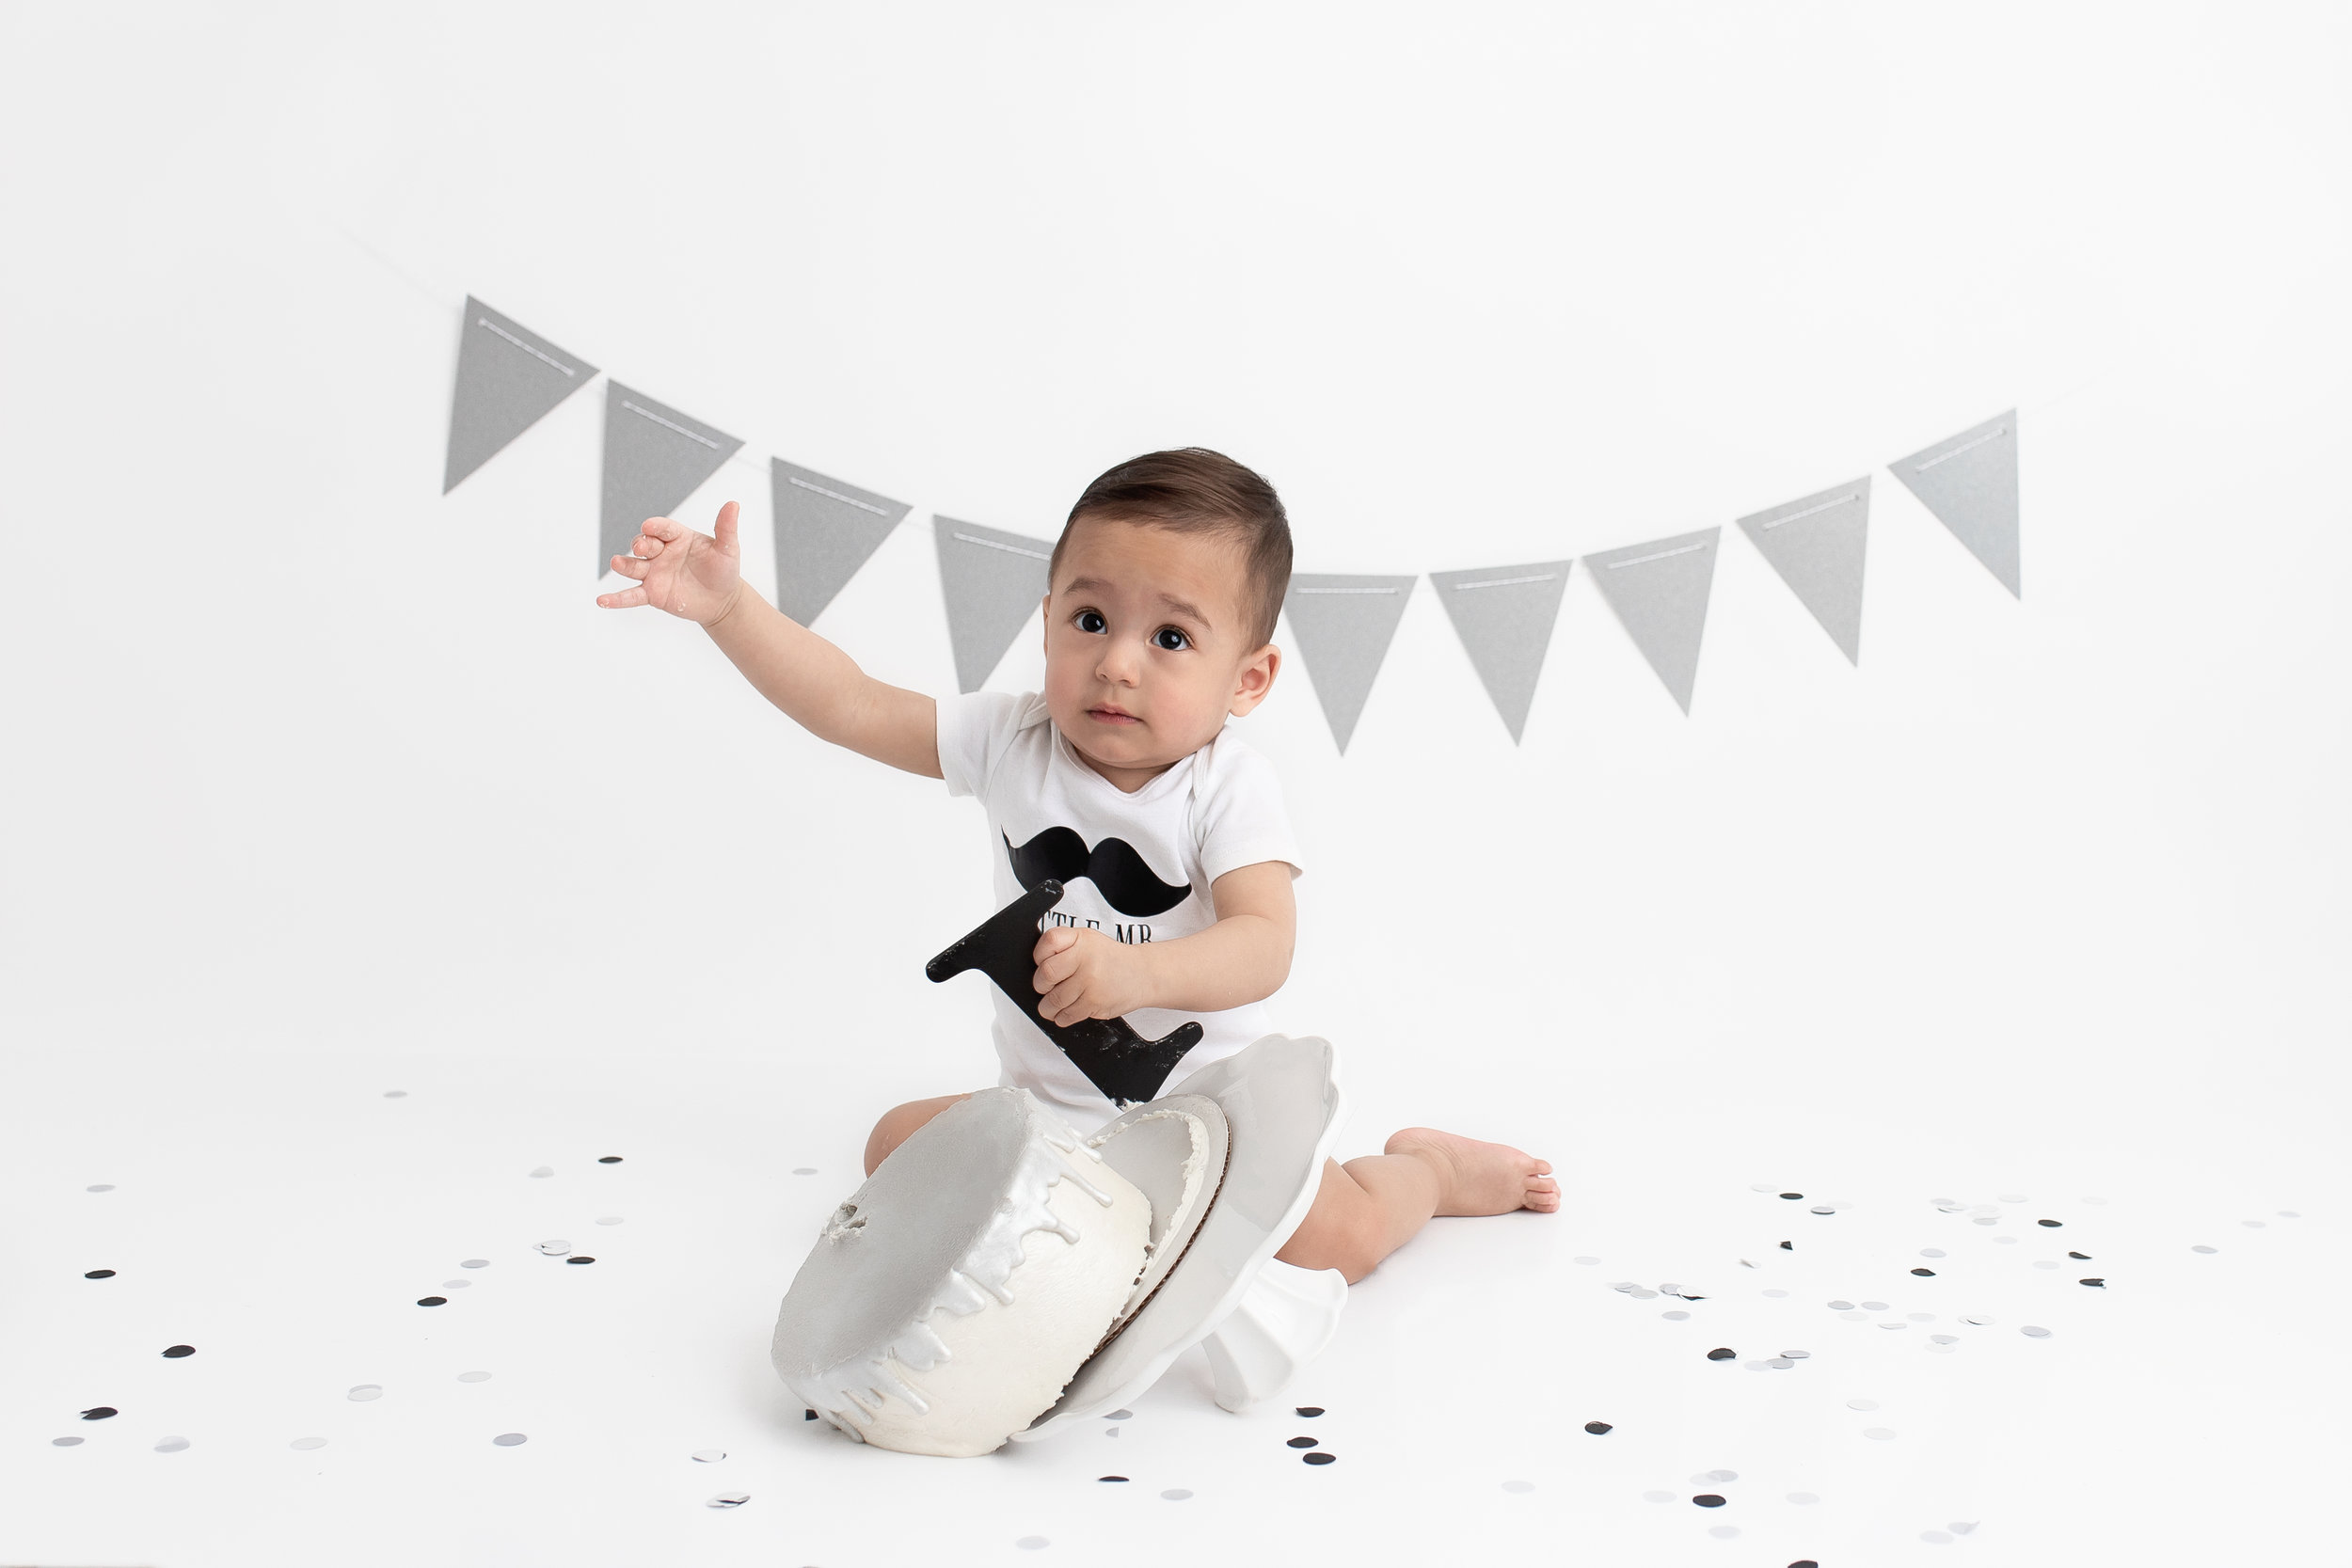 cake smash session edmonton best photographer edmonton milestone photo session baby photography st-albert